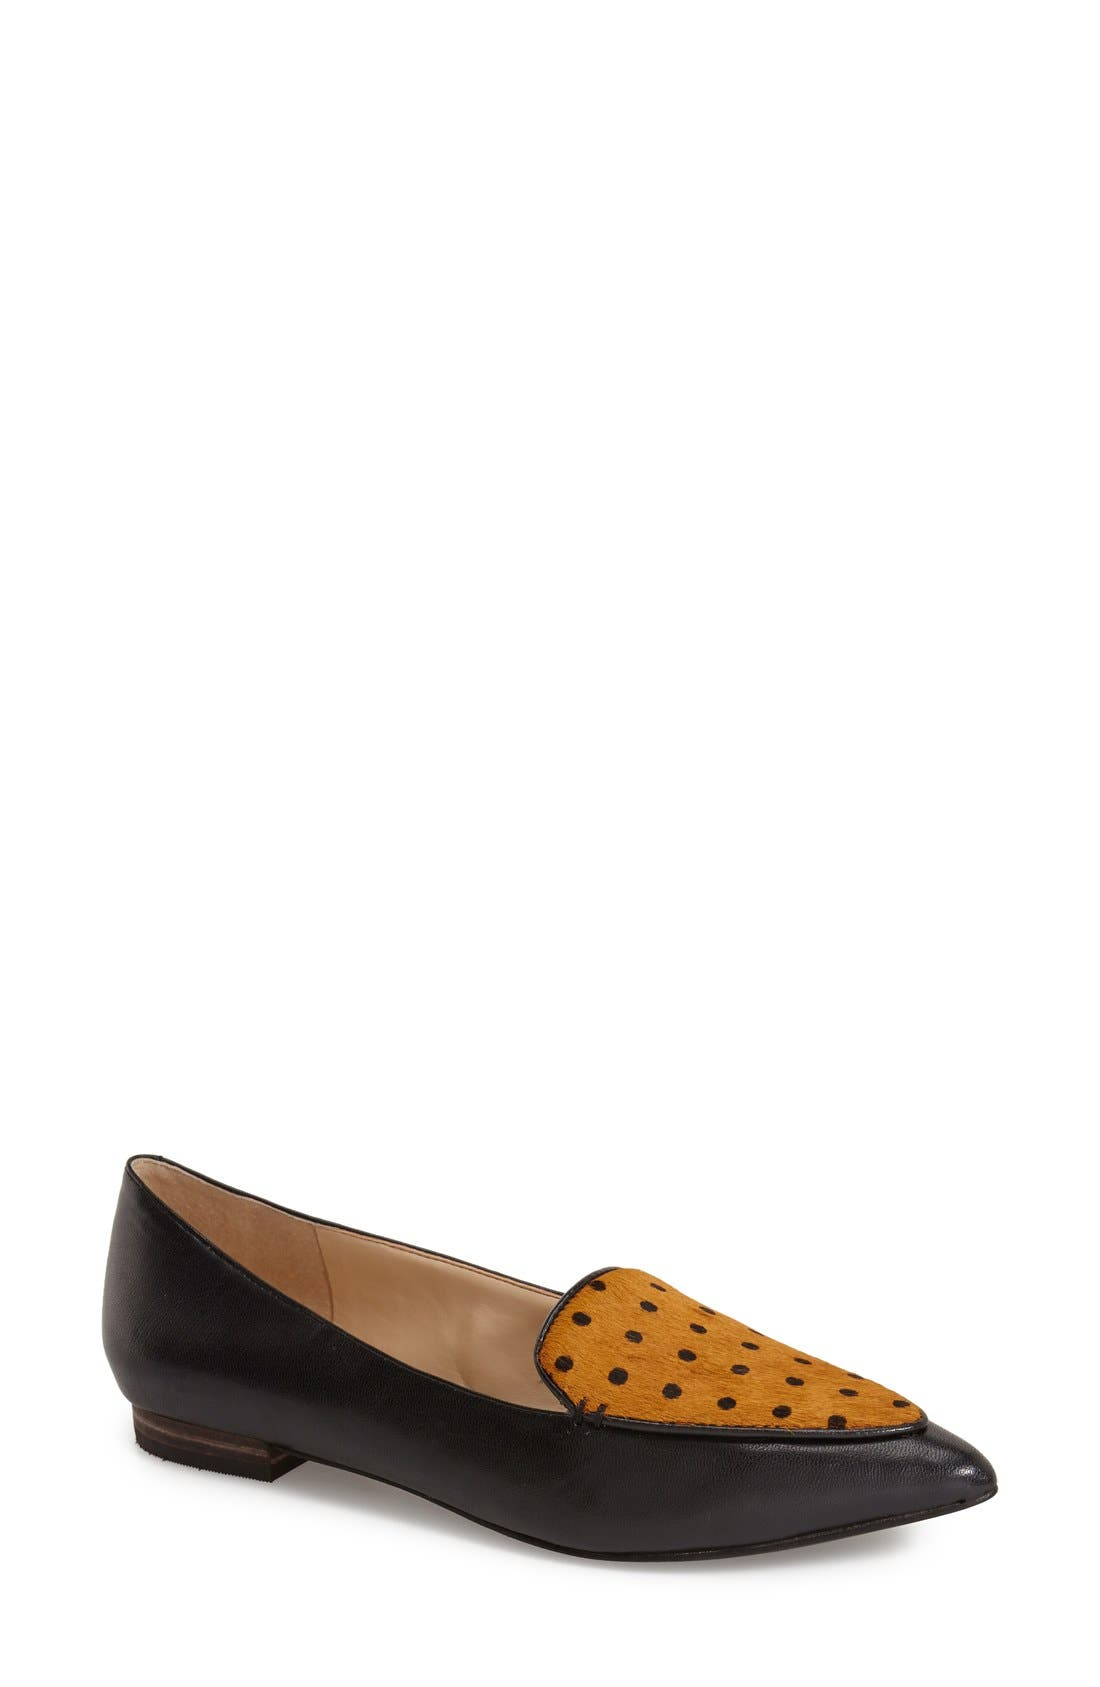 'Cammila' Pointy Toe Loafer,                             Main thumbnail 7, color,